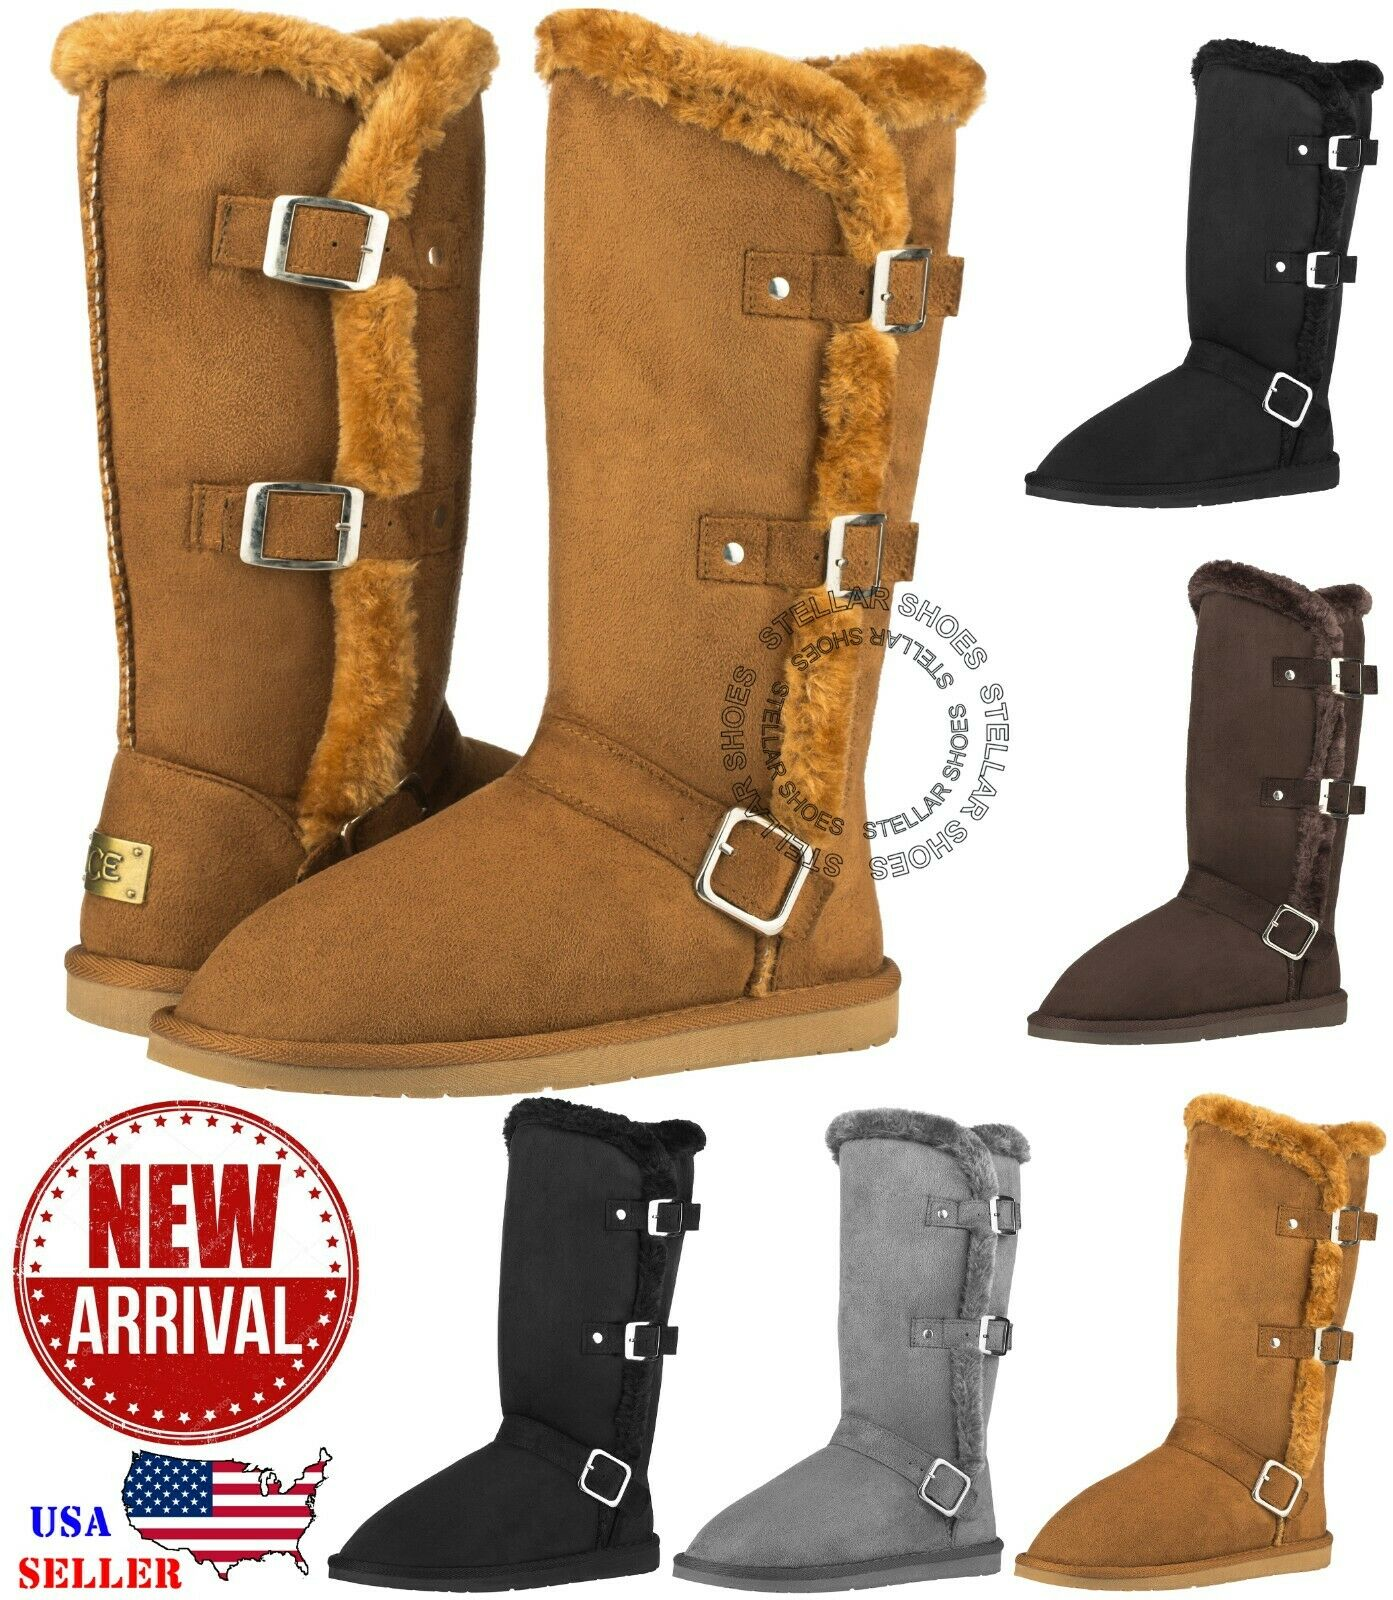 NEW Women's Winter Snow Boots with Buckles Vegan Leather Mid